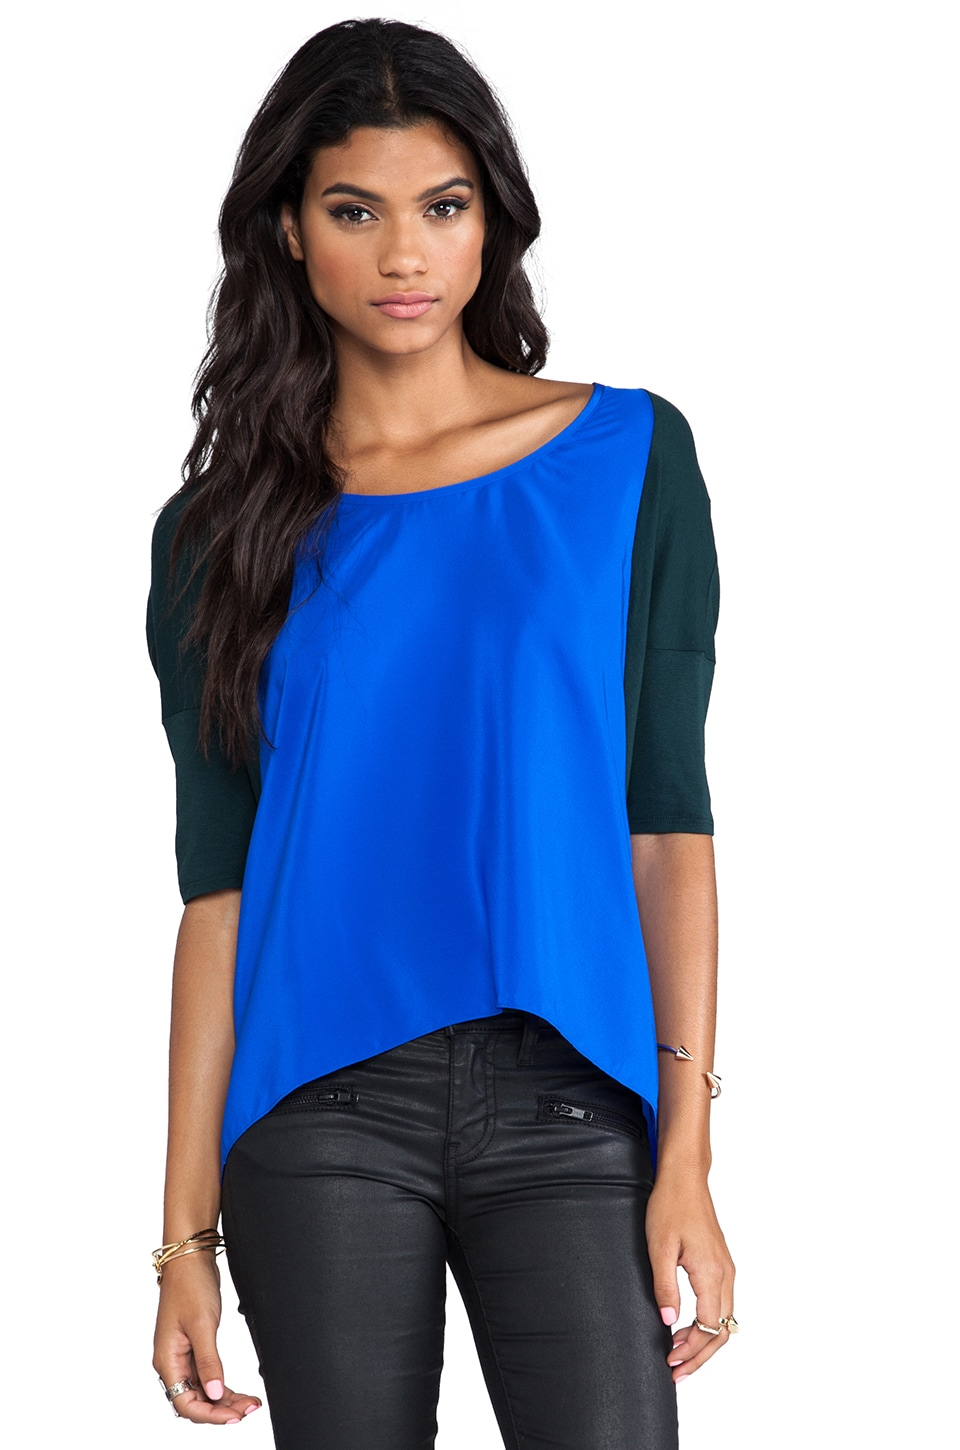 Mason by Michelle Mason Raglan Tee in Hunter/Cobalt